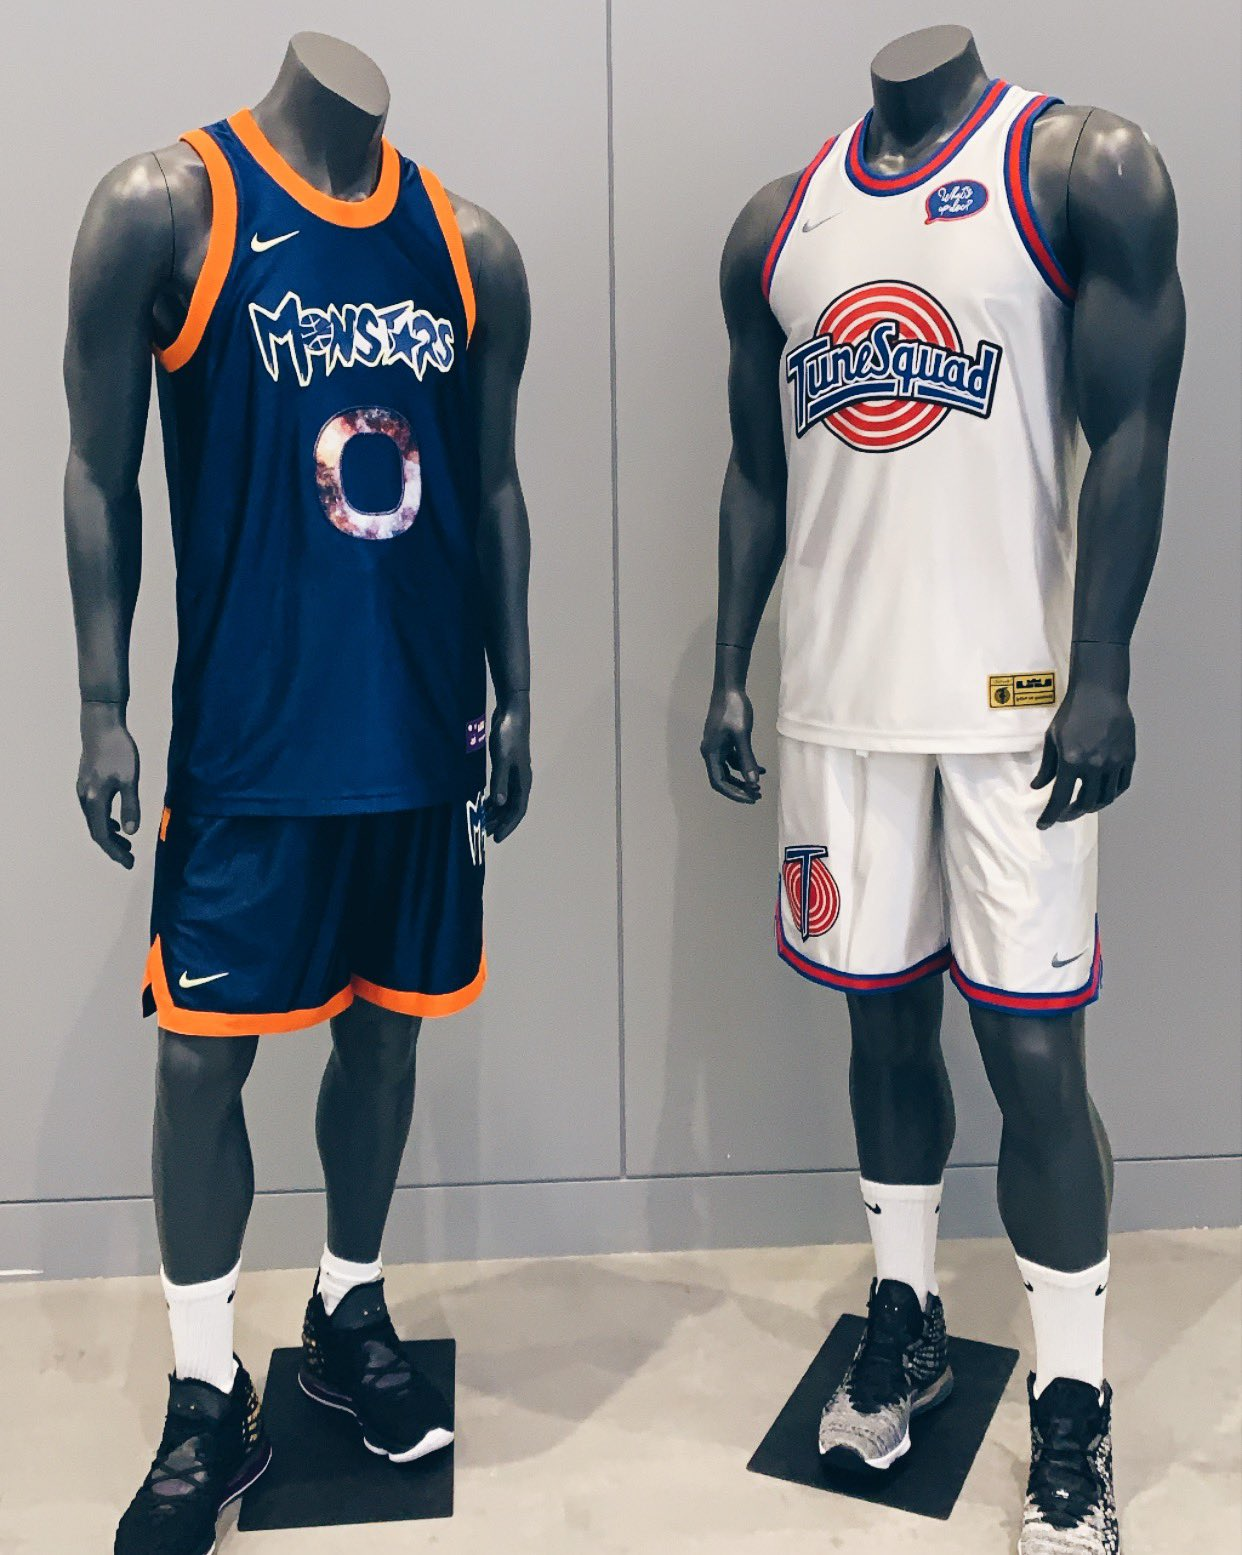 FILM] : Discover the new jerseys from the film Space Jam 2